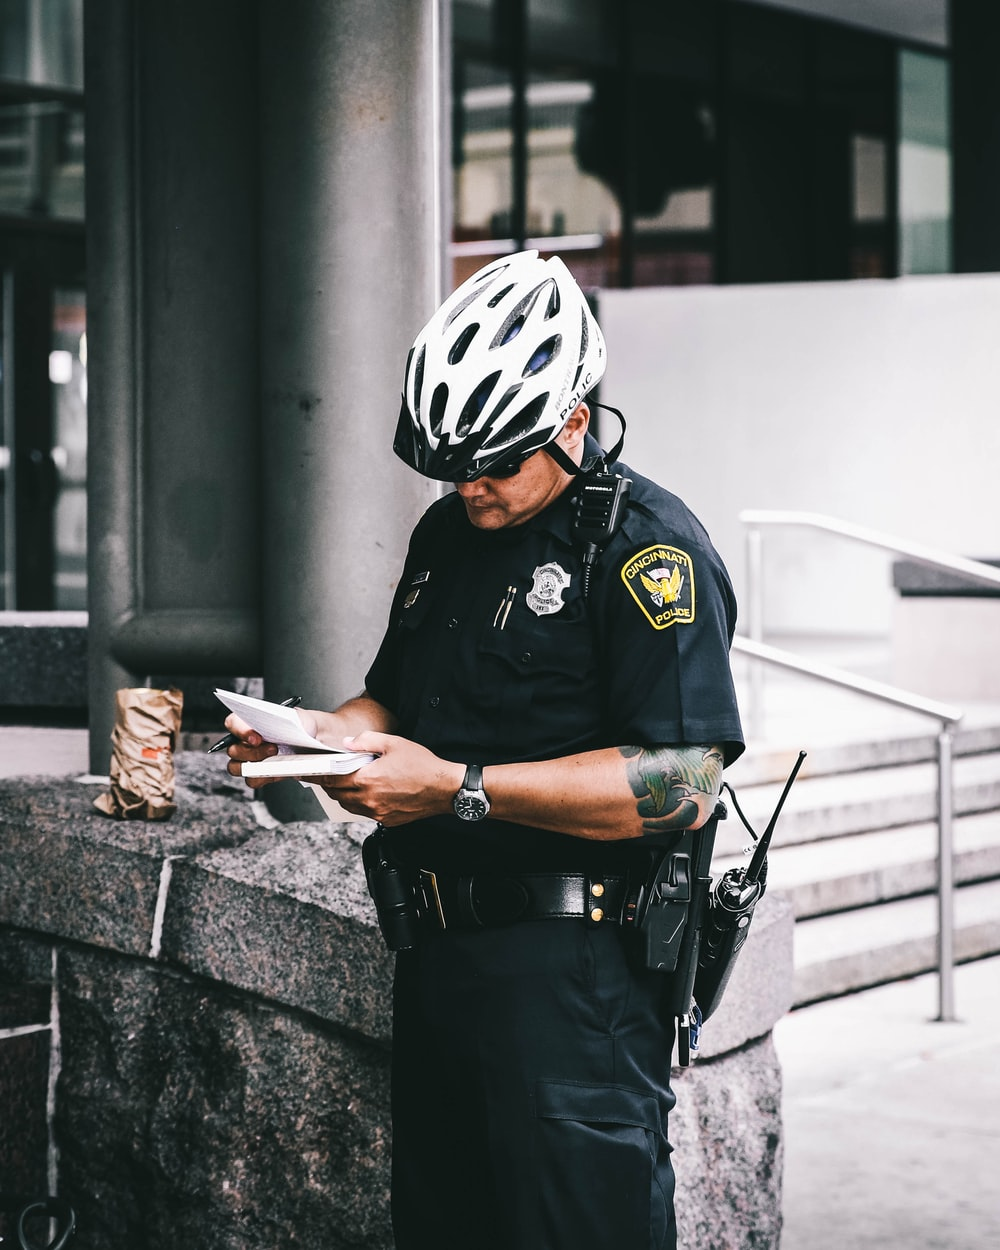 officer reading notes